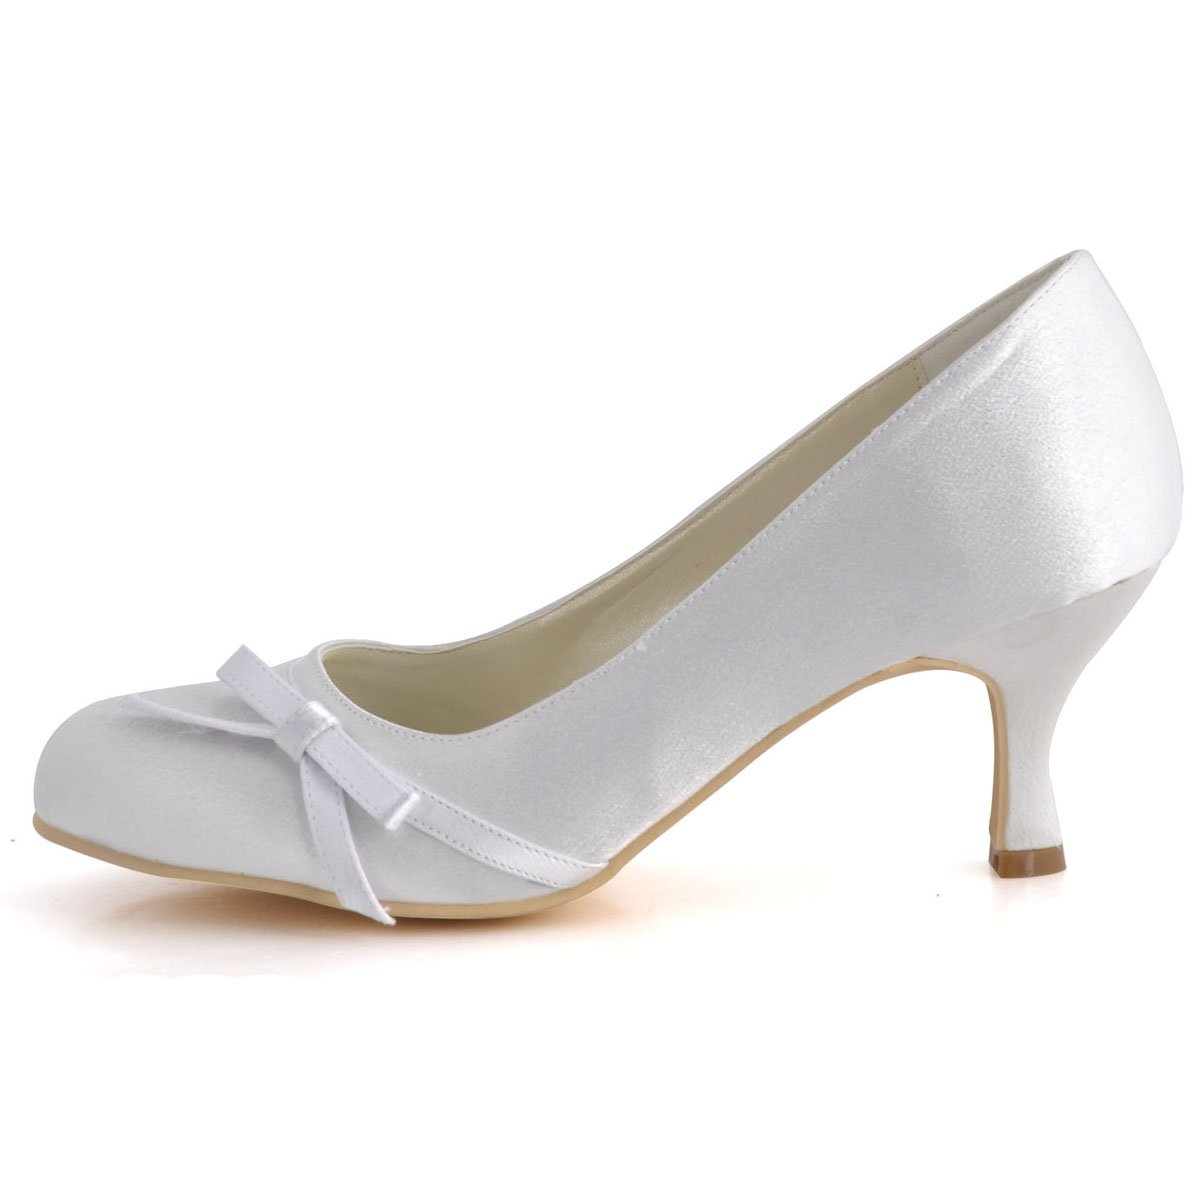 57d3215bf9 ElegantPark A0756 Women Pumps Closed Toe Heels Bowknot Prom Spool Heels  Satin Wedding Party Shoes: Amazon.co.uk: Shoes & Bags